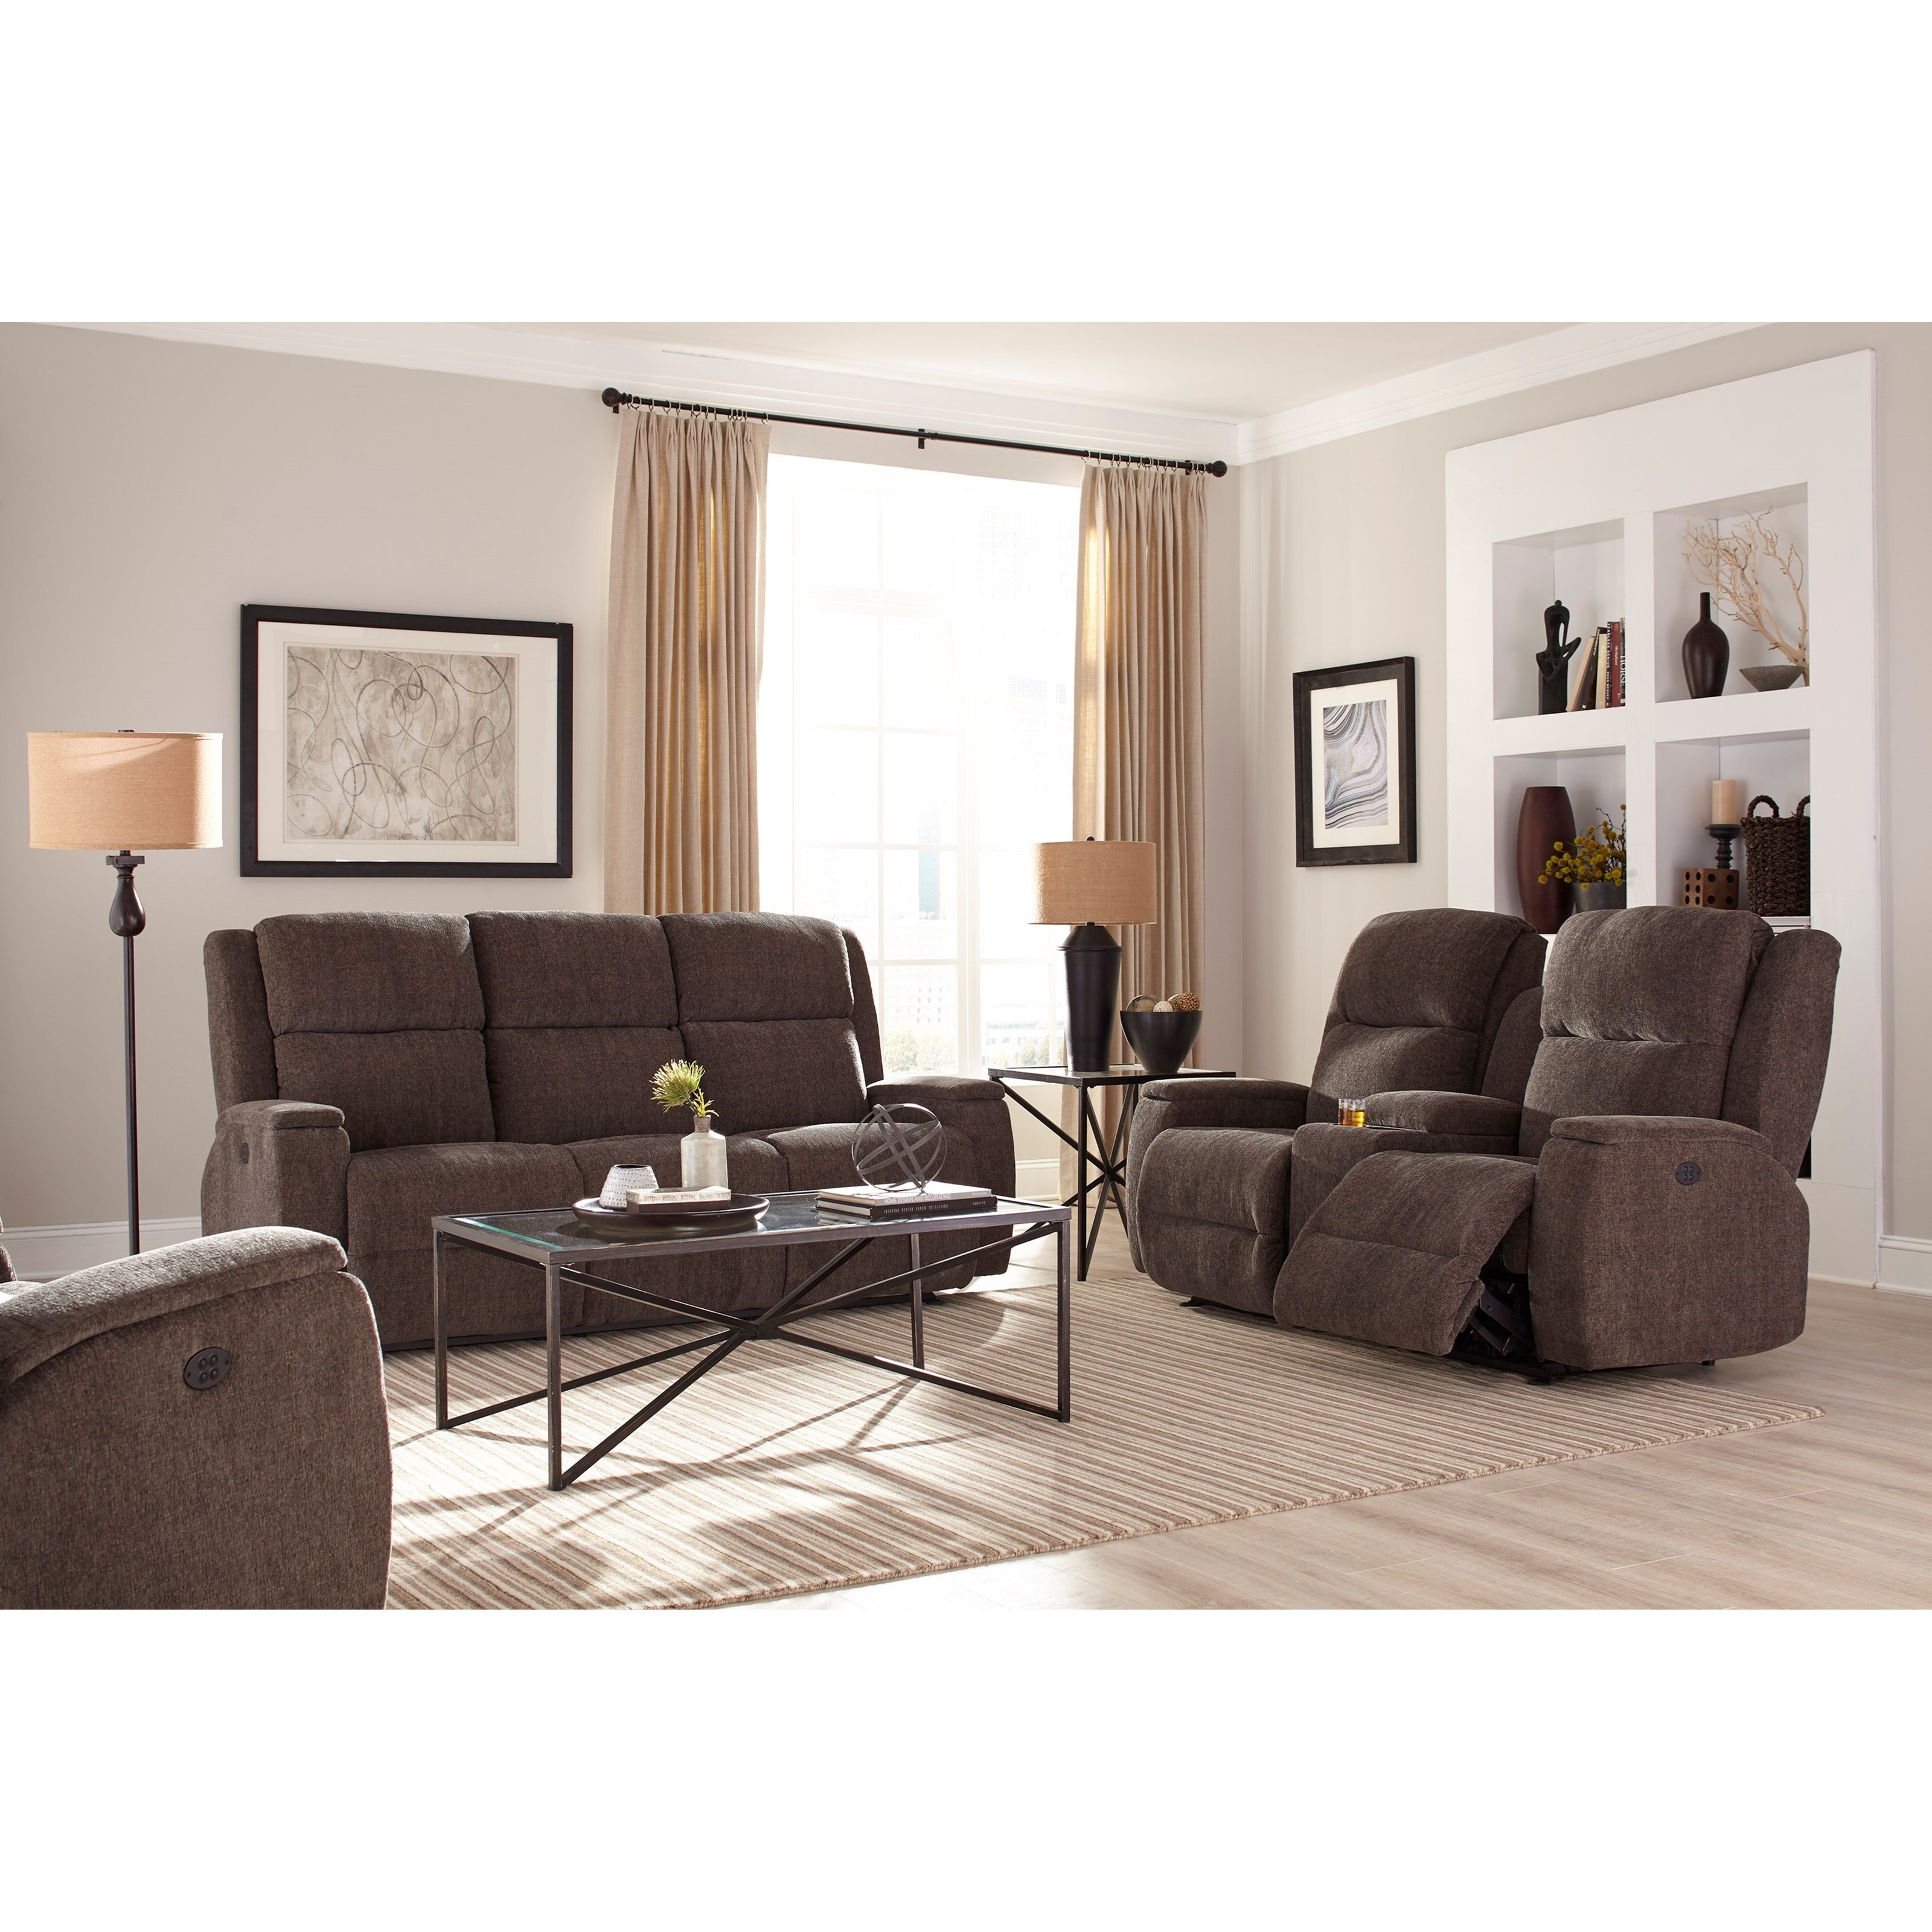 Power Walhugger Recl Sofa W/ Pwr Headrest